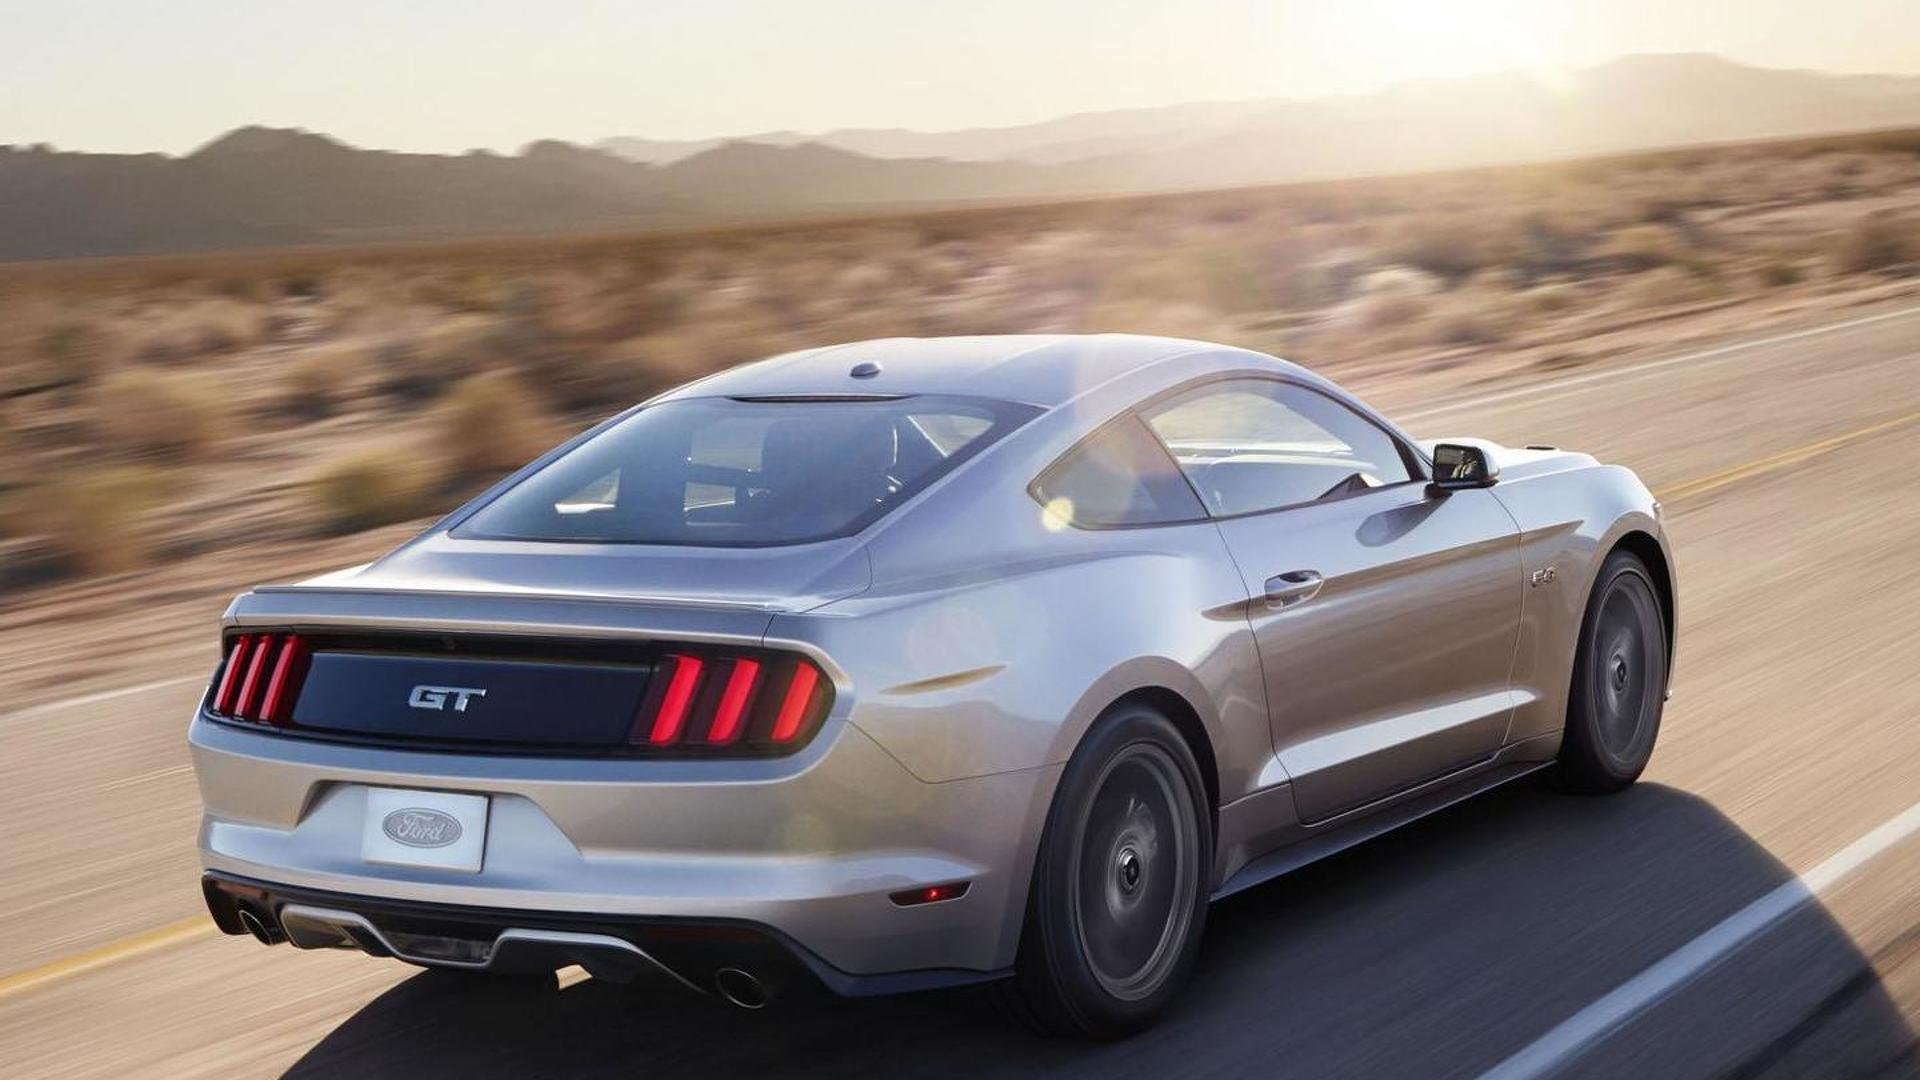 Ford exec says the Mustang platform could spawn additional models, possibly a Lincoln - report